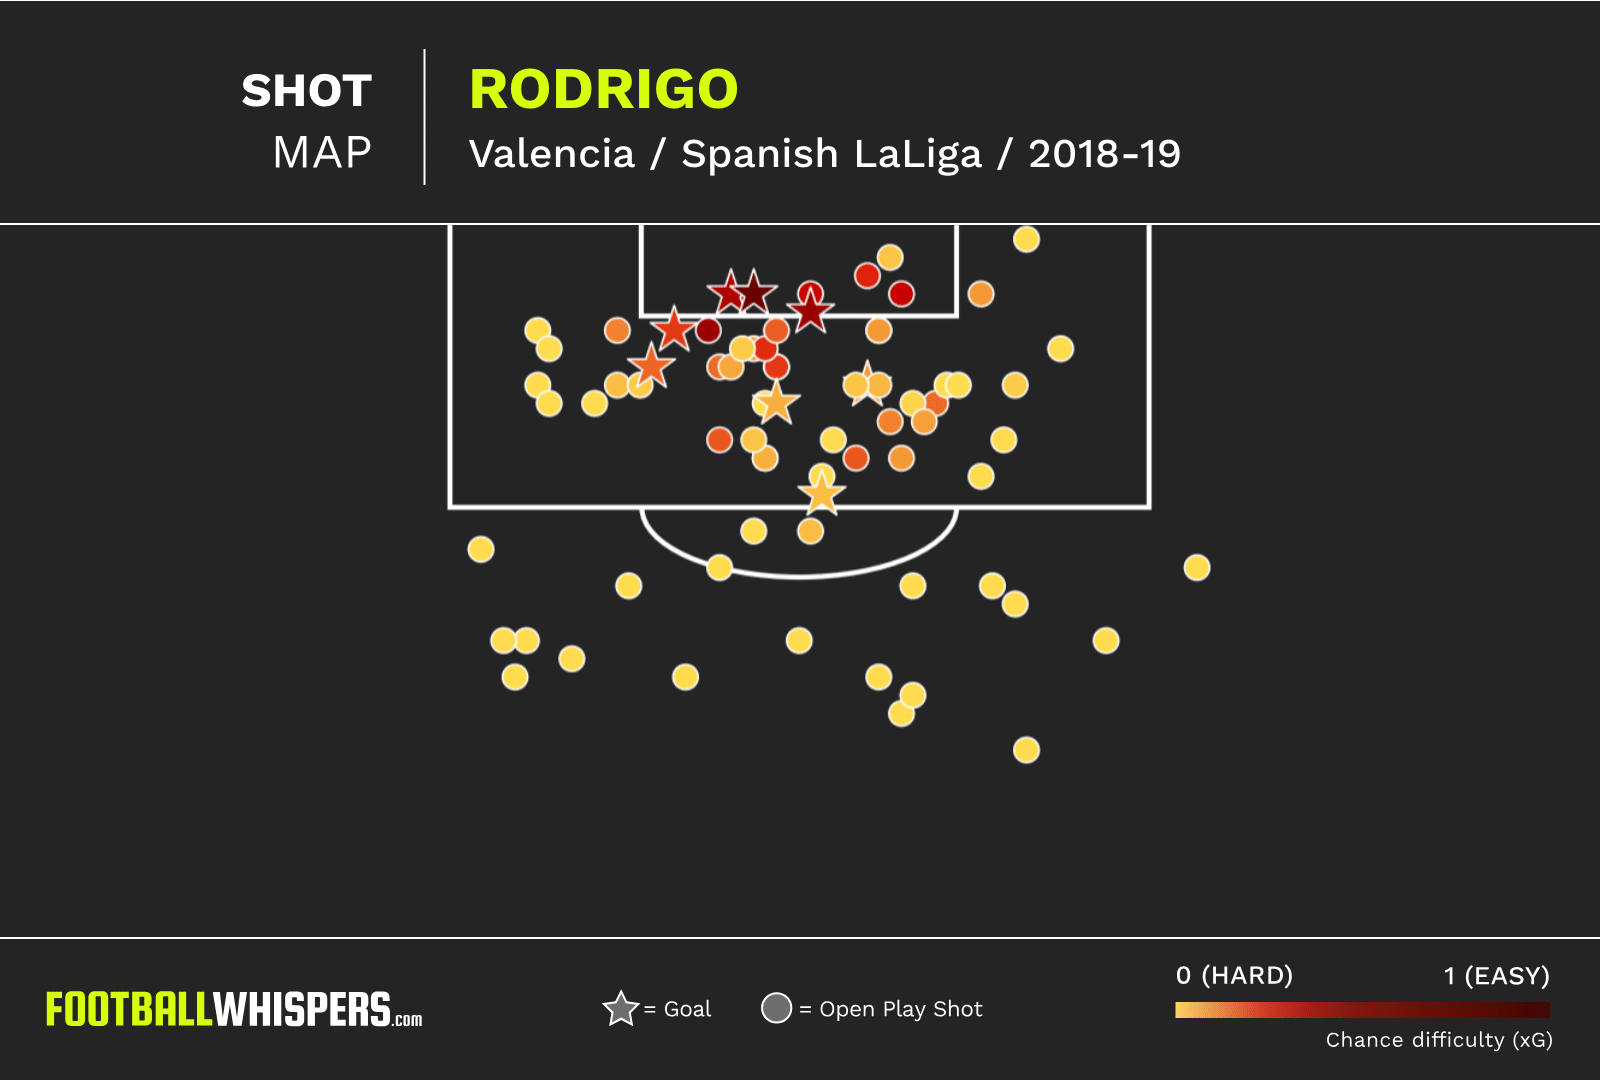 The LaLiga shot map for Rodrigo of Valencia who has been linked to West Ham